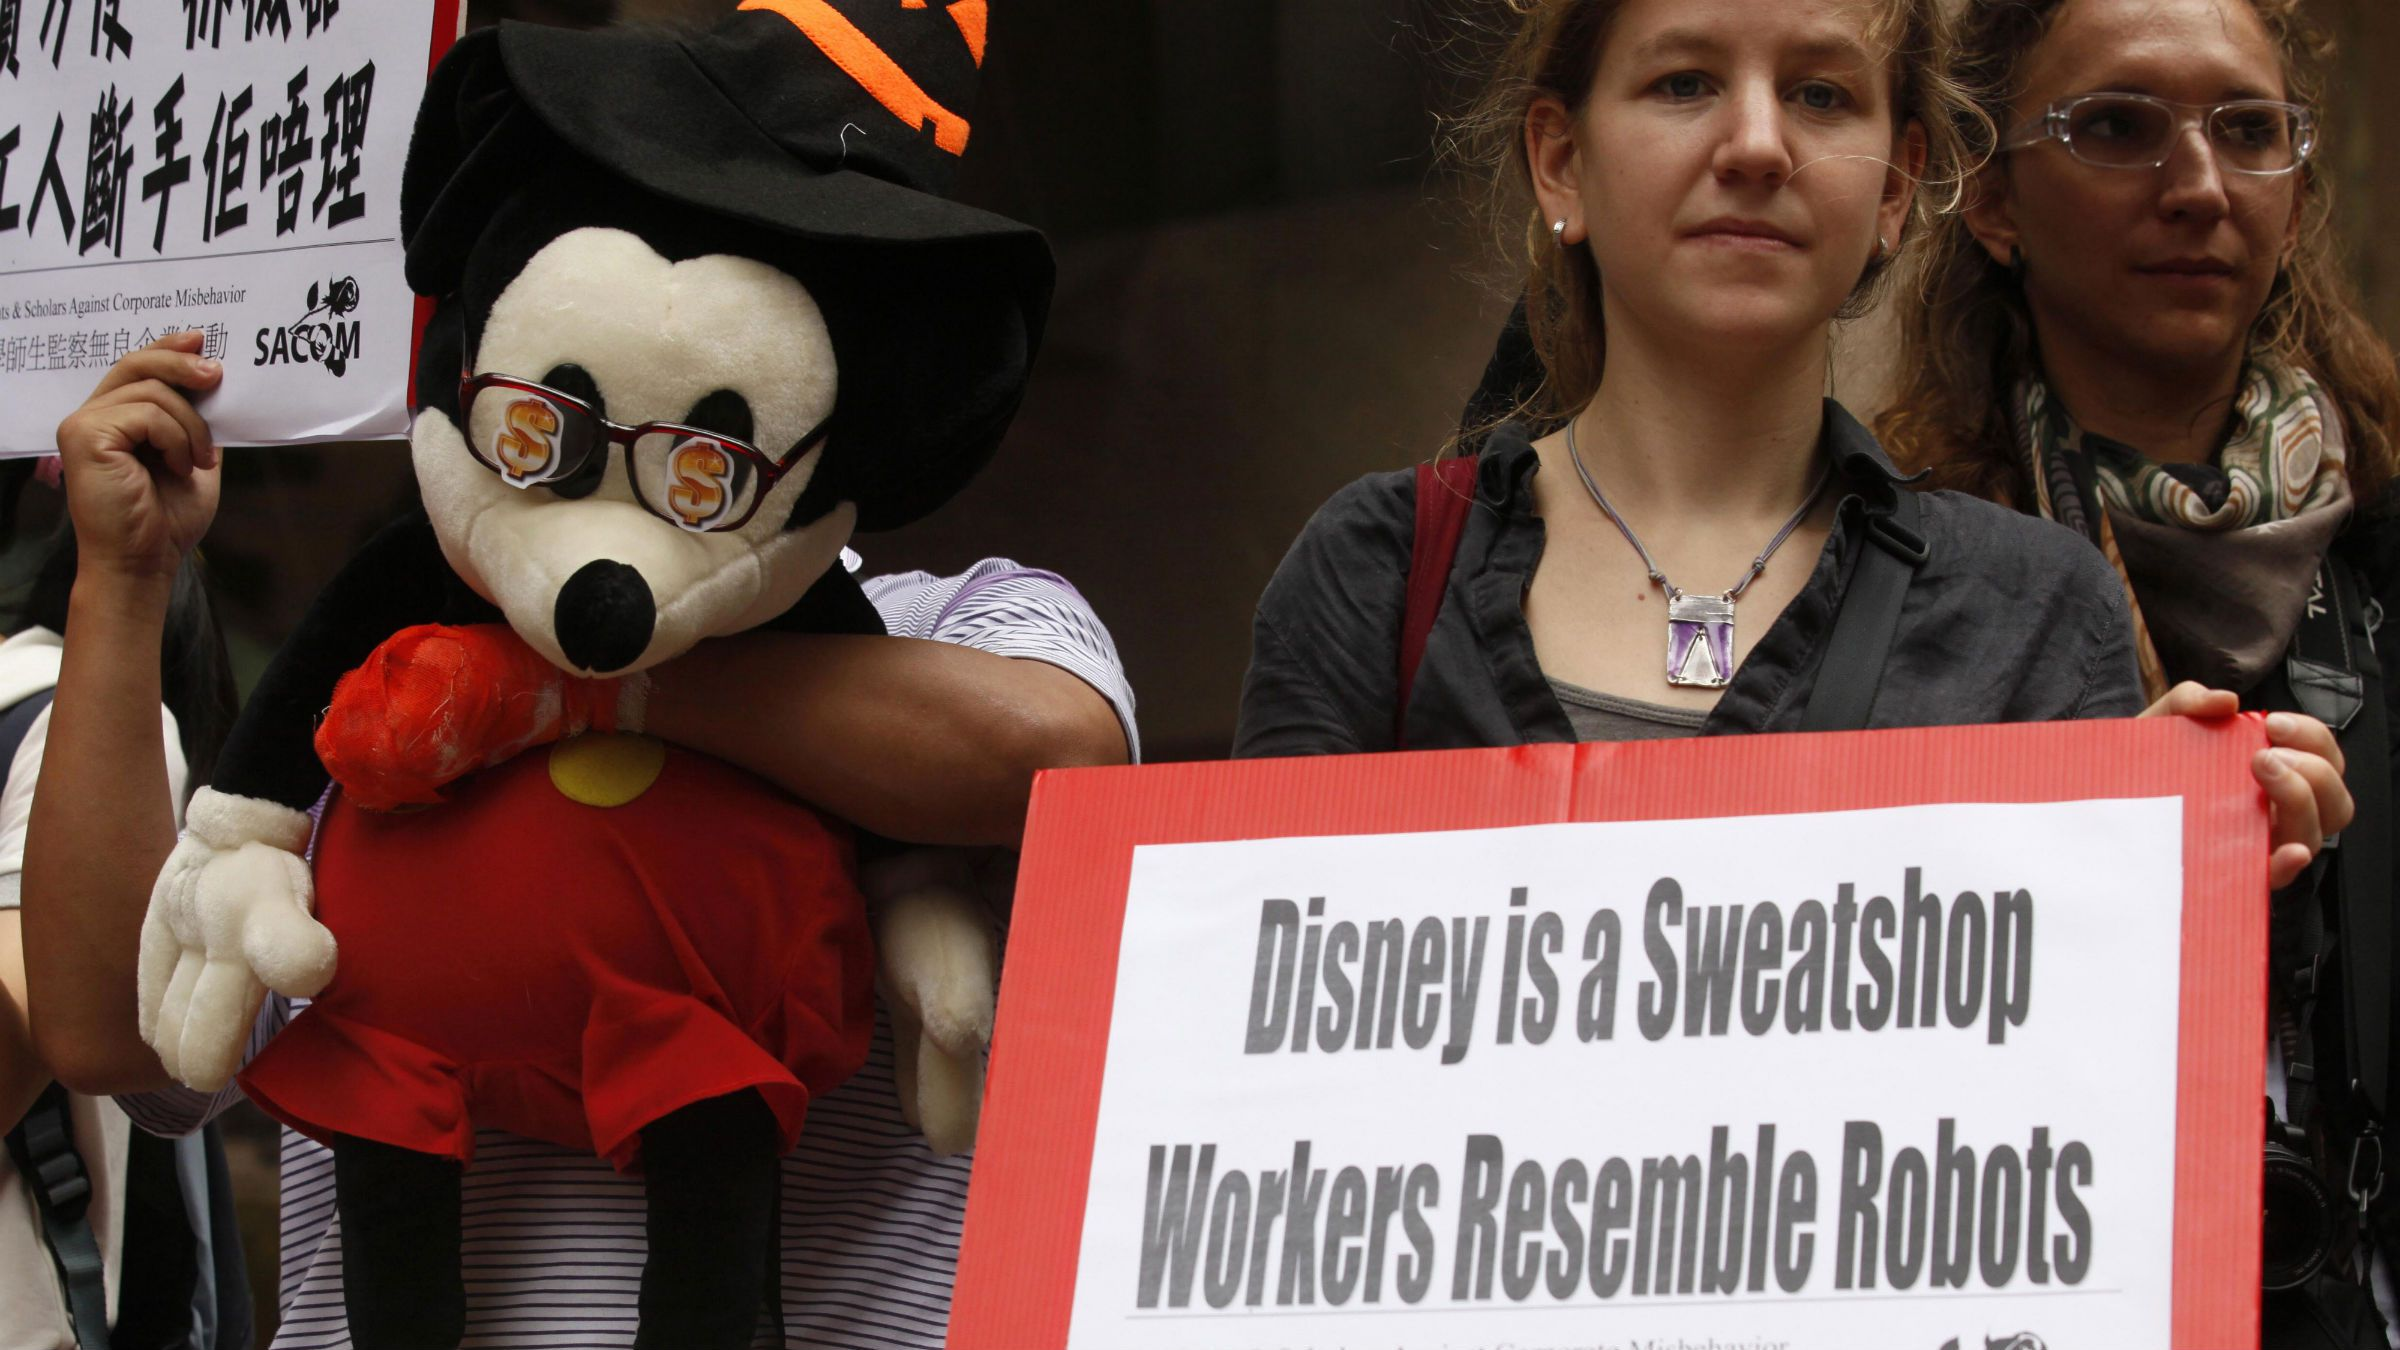 A protester from Students and Scholars Against Corporate Misbehavior holds a Mickey Mouse wearing glasses with dollar signs as they demonstrate near the Walt Disney Co. (Asia Pacific) Ltd. Office in Hong Kong Friday, Oct. 22, 2010. The protesters were demanding the Disney toy suppliers pay raise and better labor condition in China. (AP Photo/Kin Cheung)